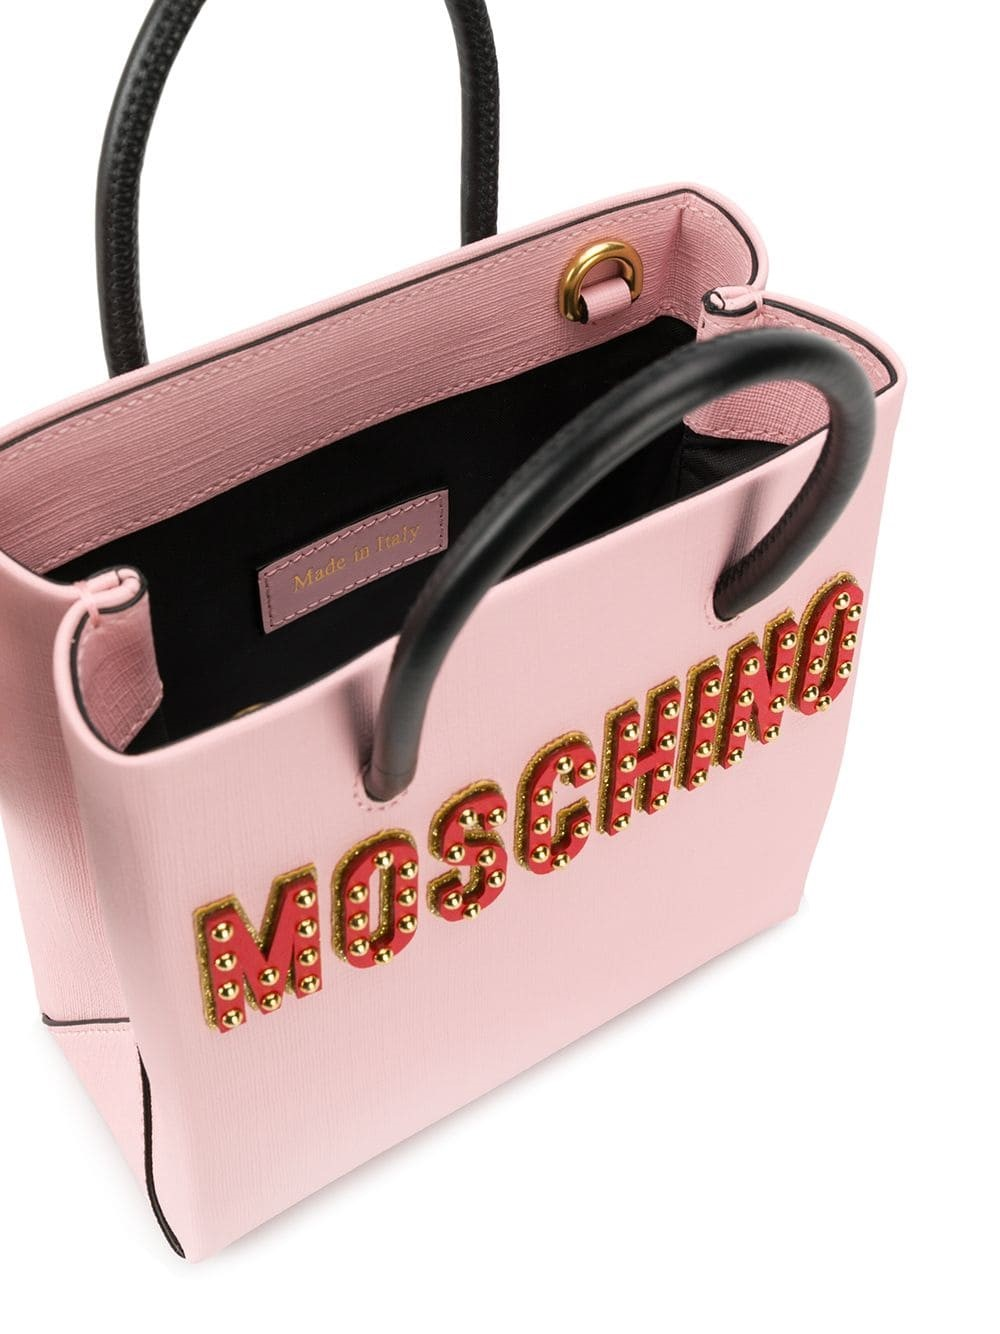 6c77ef41ec moschino TEDDY BEAR TOTE BAG available on montiboutique.com - 26897